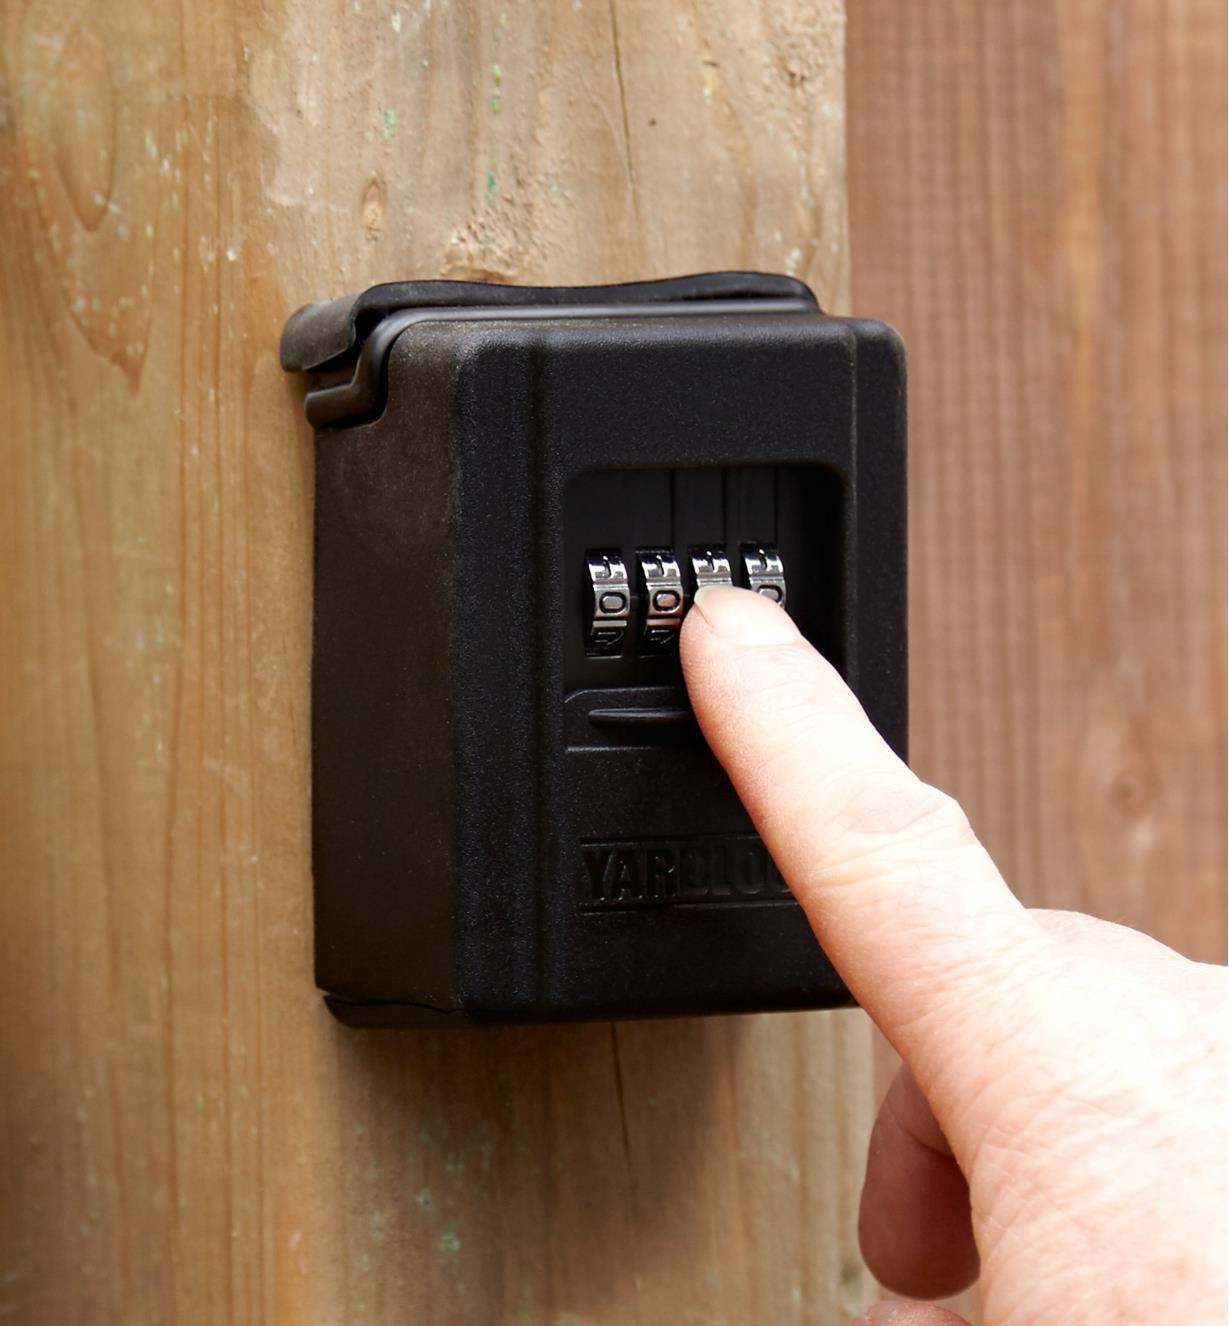 Operating the combination pad on the keyless gate lock